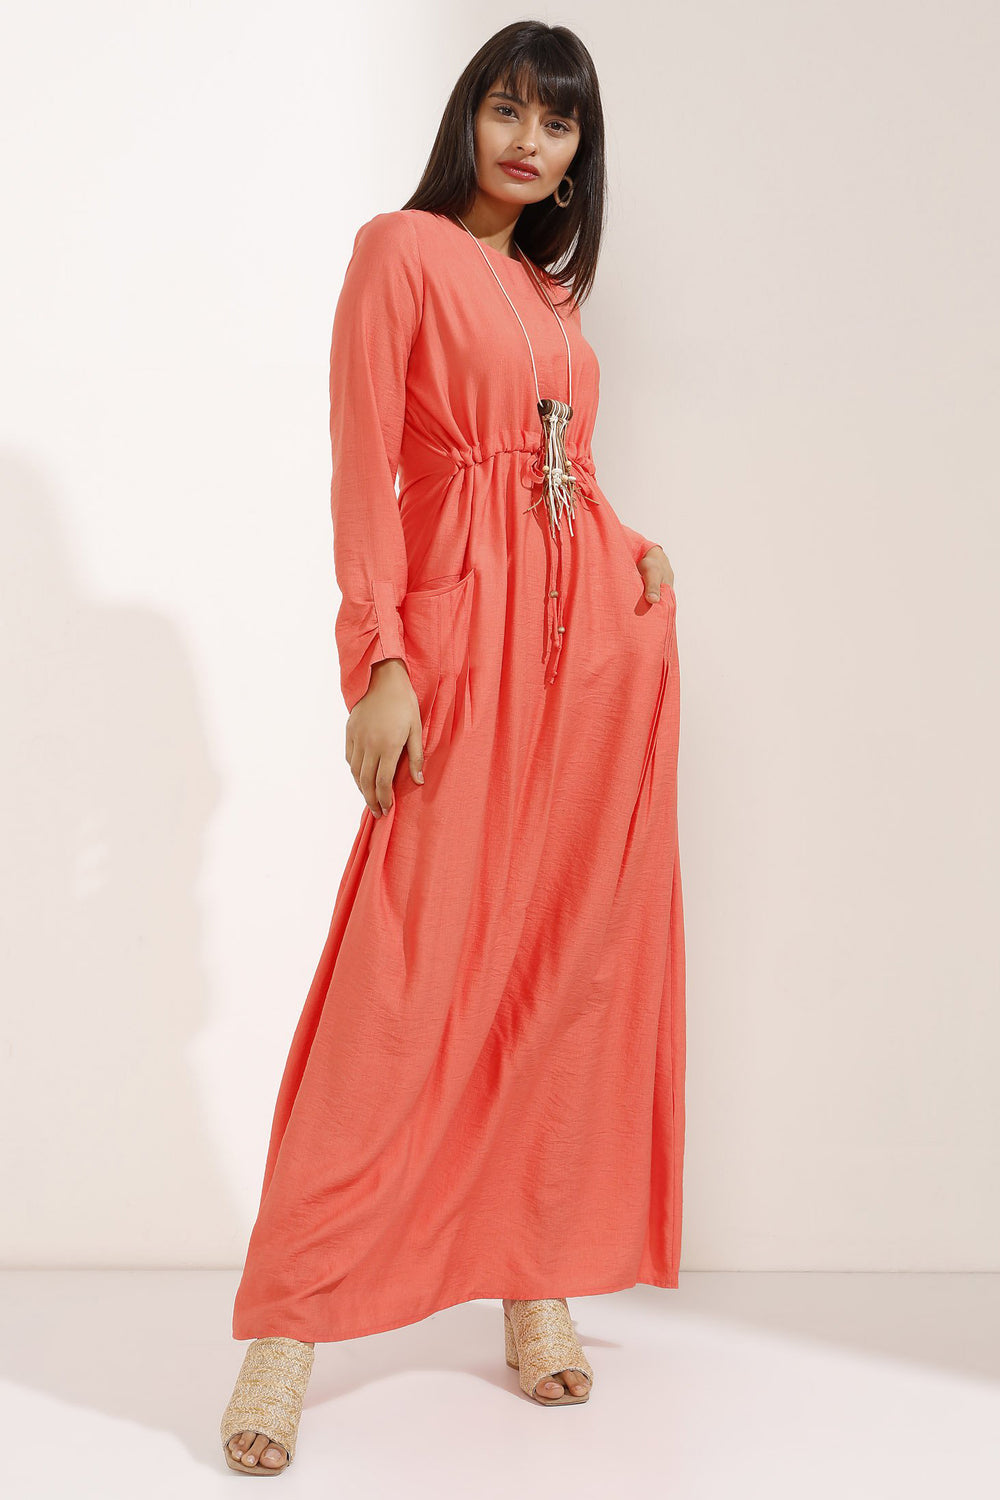 Store WF Long Orange Shirred Dress with Necklace Modest Maxi Dress with Long Sleeves, Gathered Waist and Front Pockets in 100% Cotton